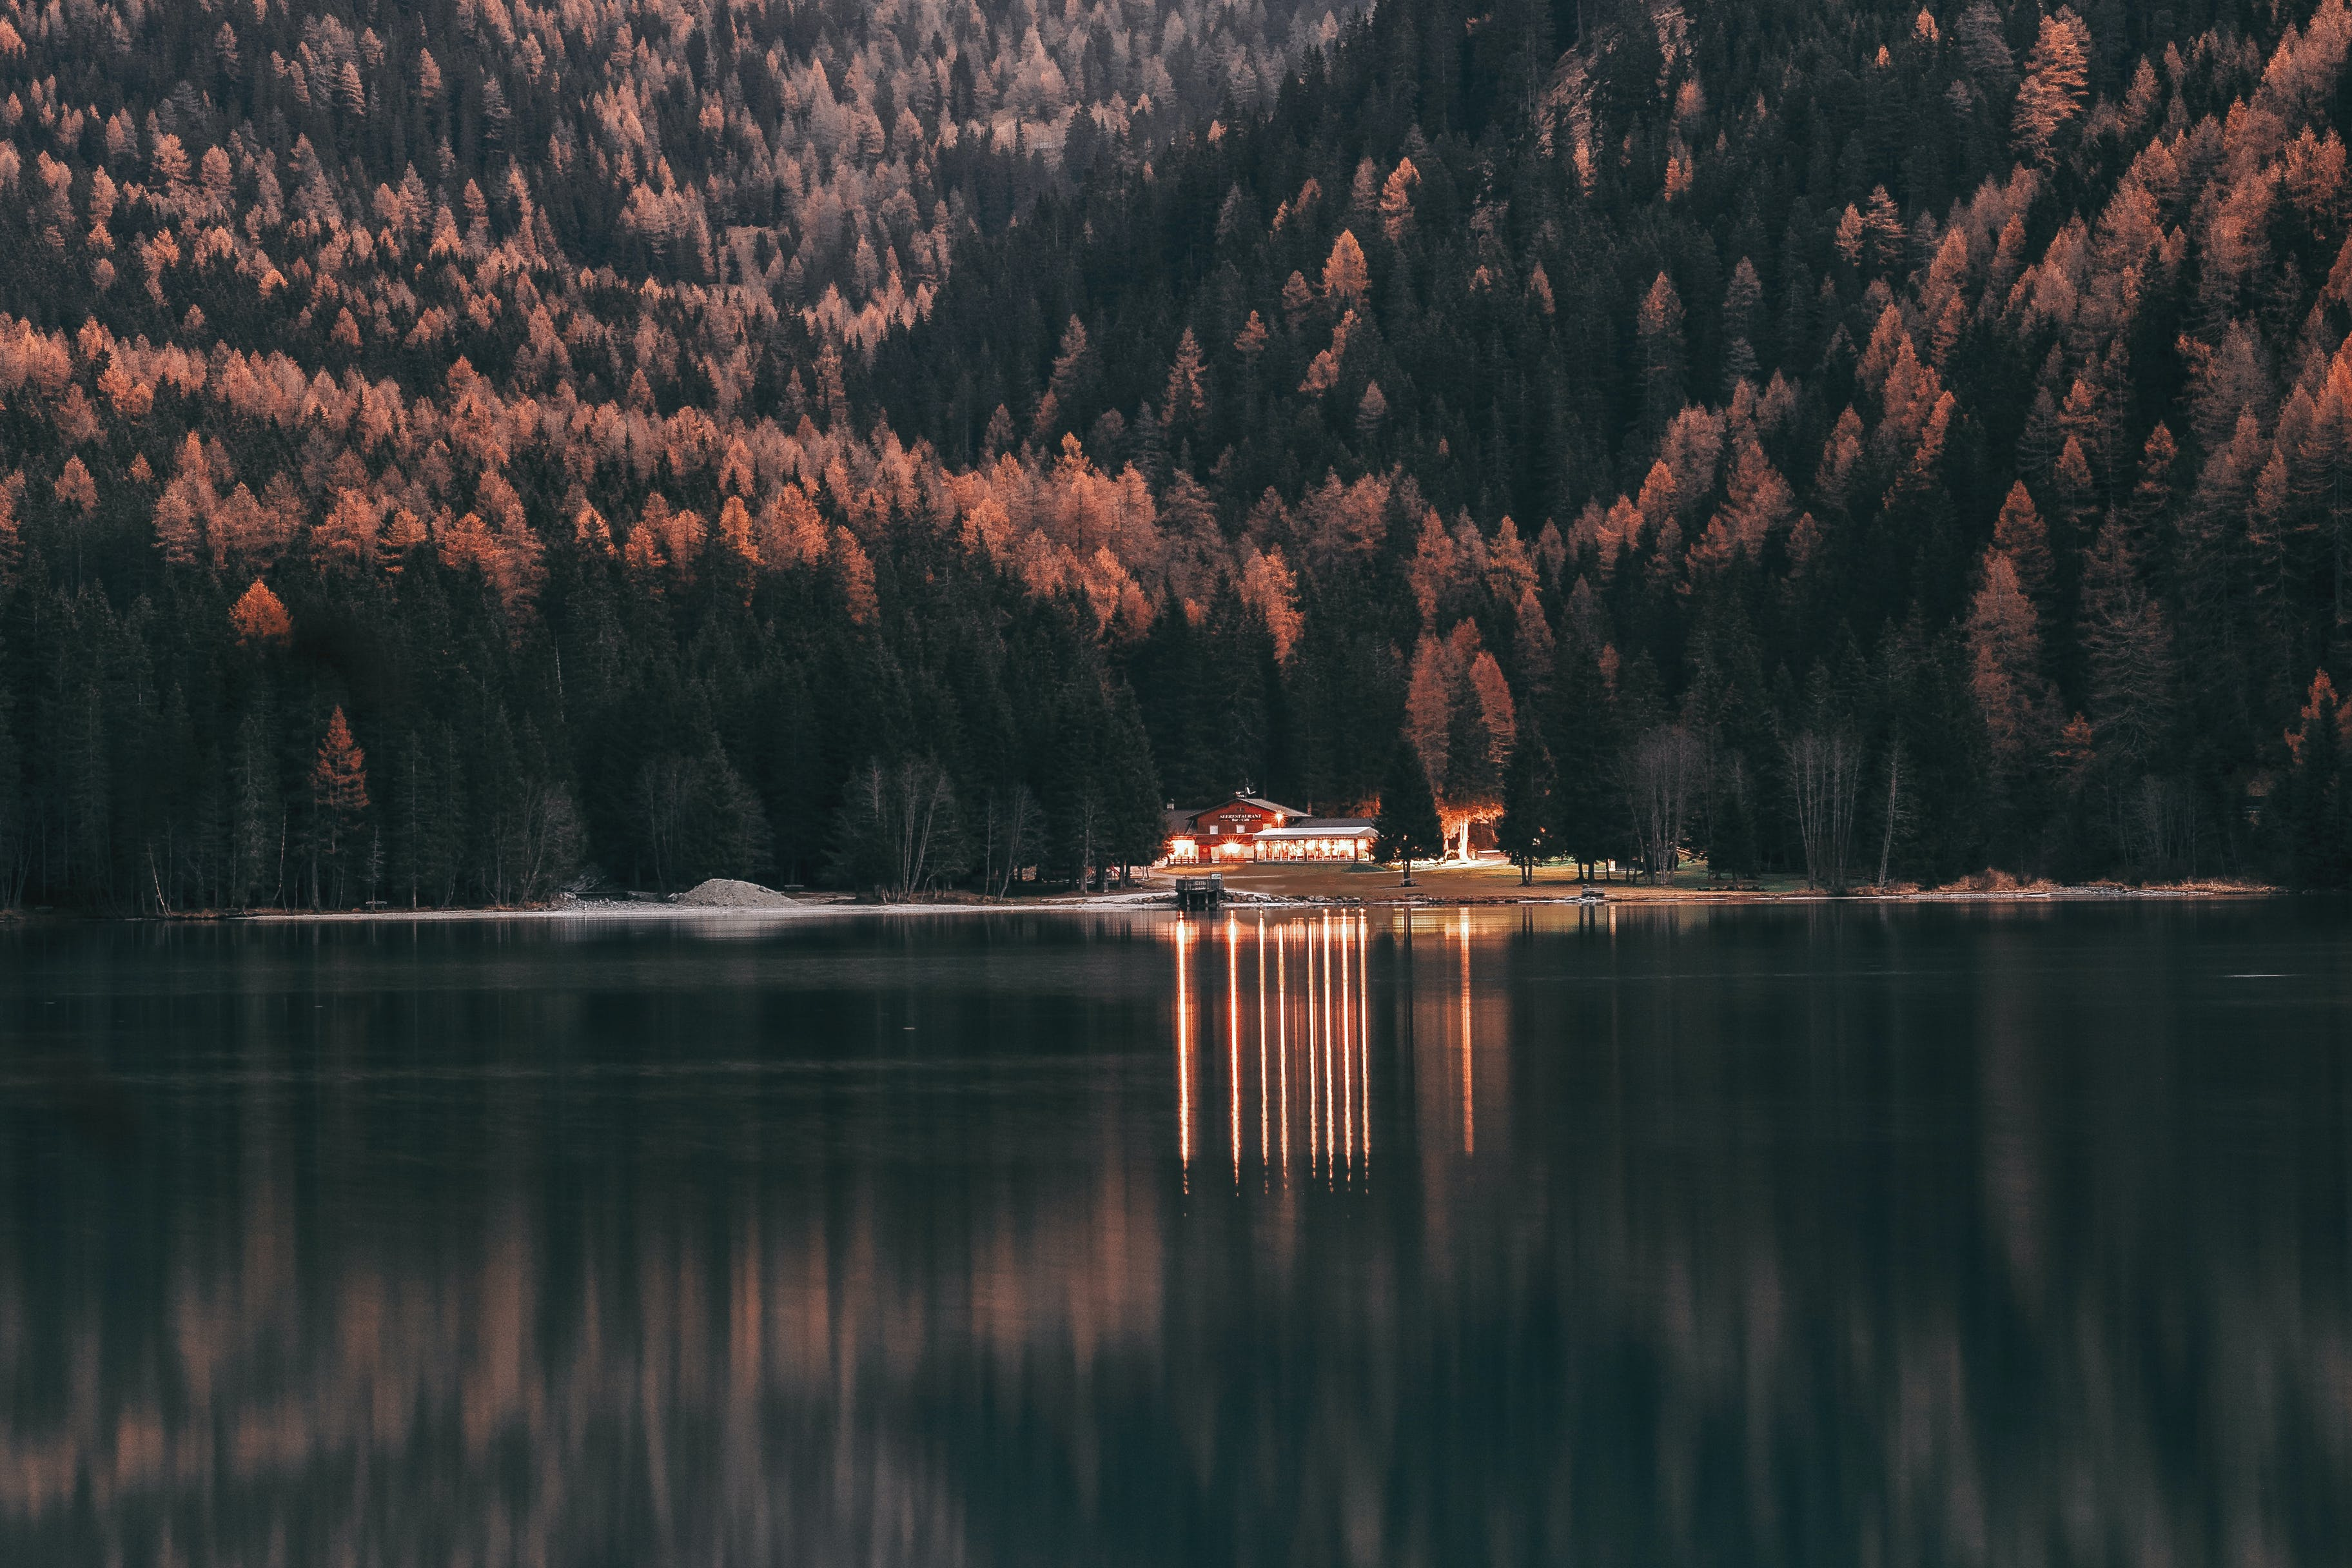 Landscape Photography Of House Near Woods And Calm Body Of Water